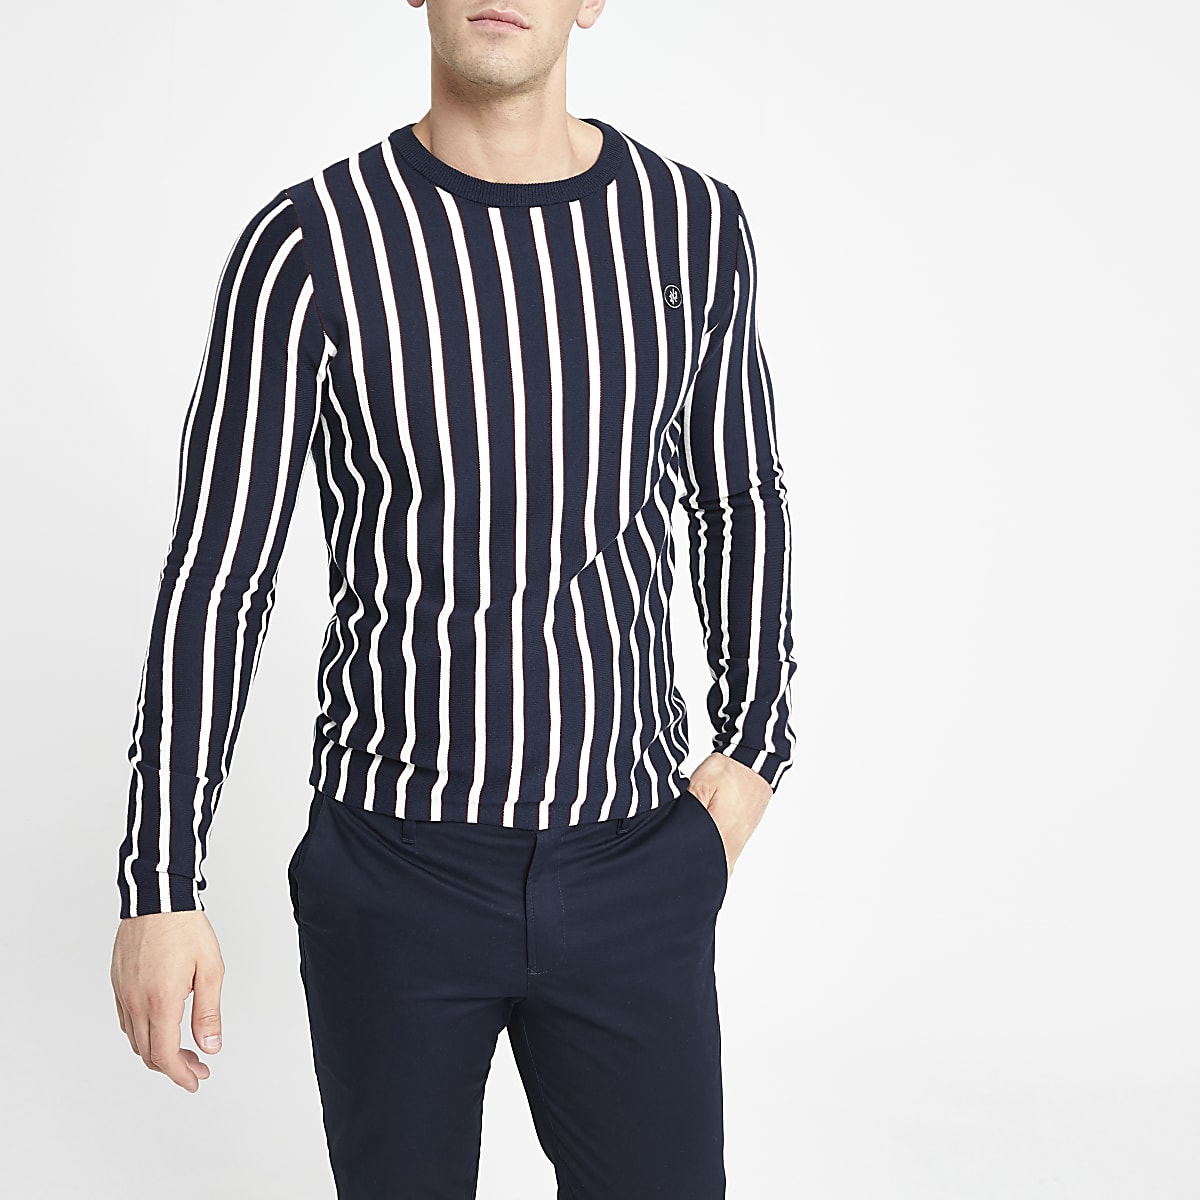 Jack and Jones white stripe knitted sweater